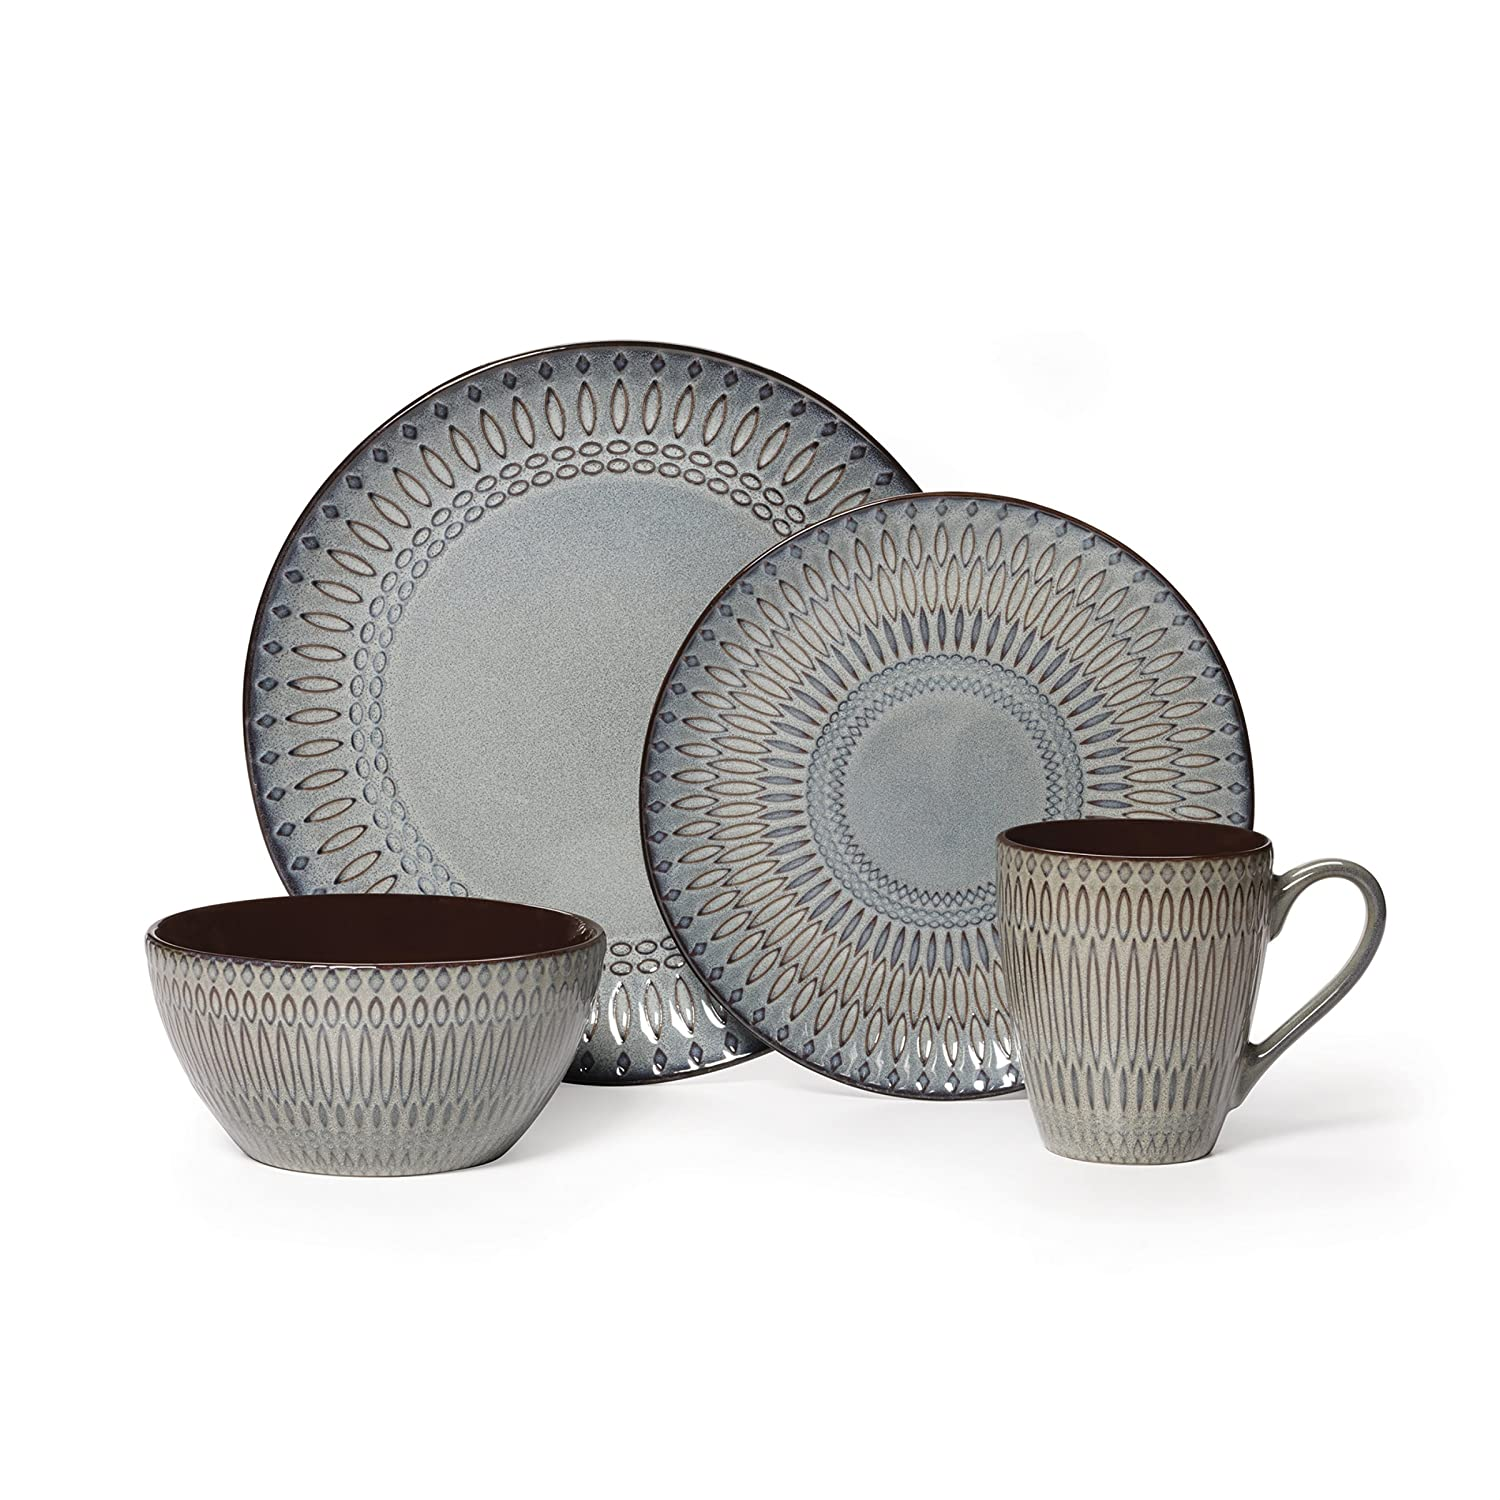 Amazon.com | Gourmet Basics by Mikasa Broadway 16 Piece Dinnerware Set (Set of 4) Assorted Dinnerware Sets  sc 1 st  Amazon.com & Amazon.com | Gourmet Basics by Mikasa Broadway 16 Piece Dinnerware ...